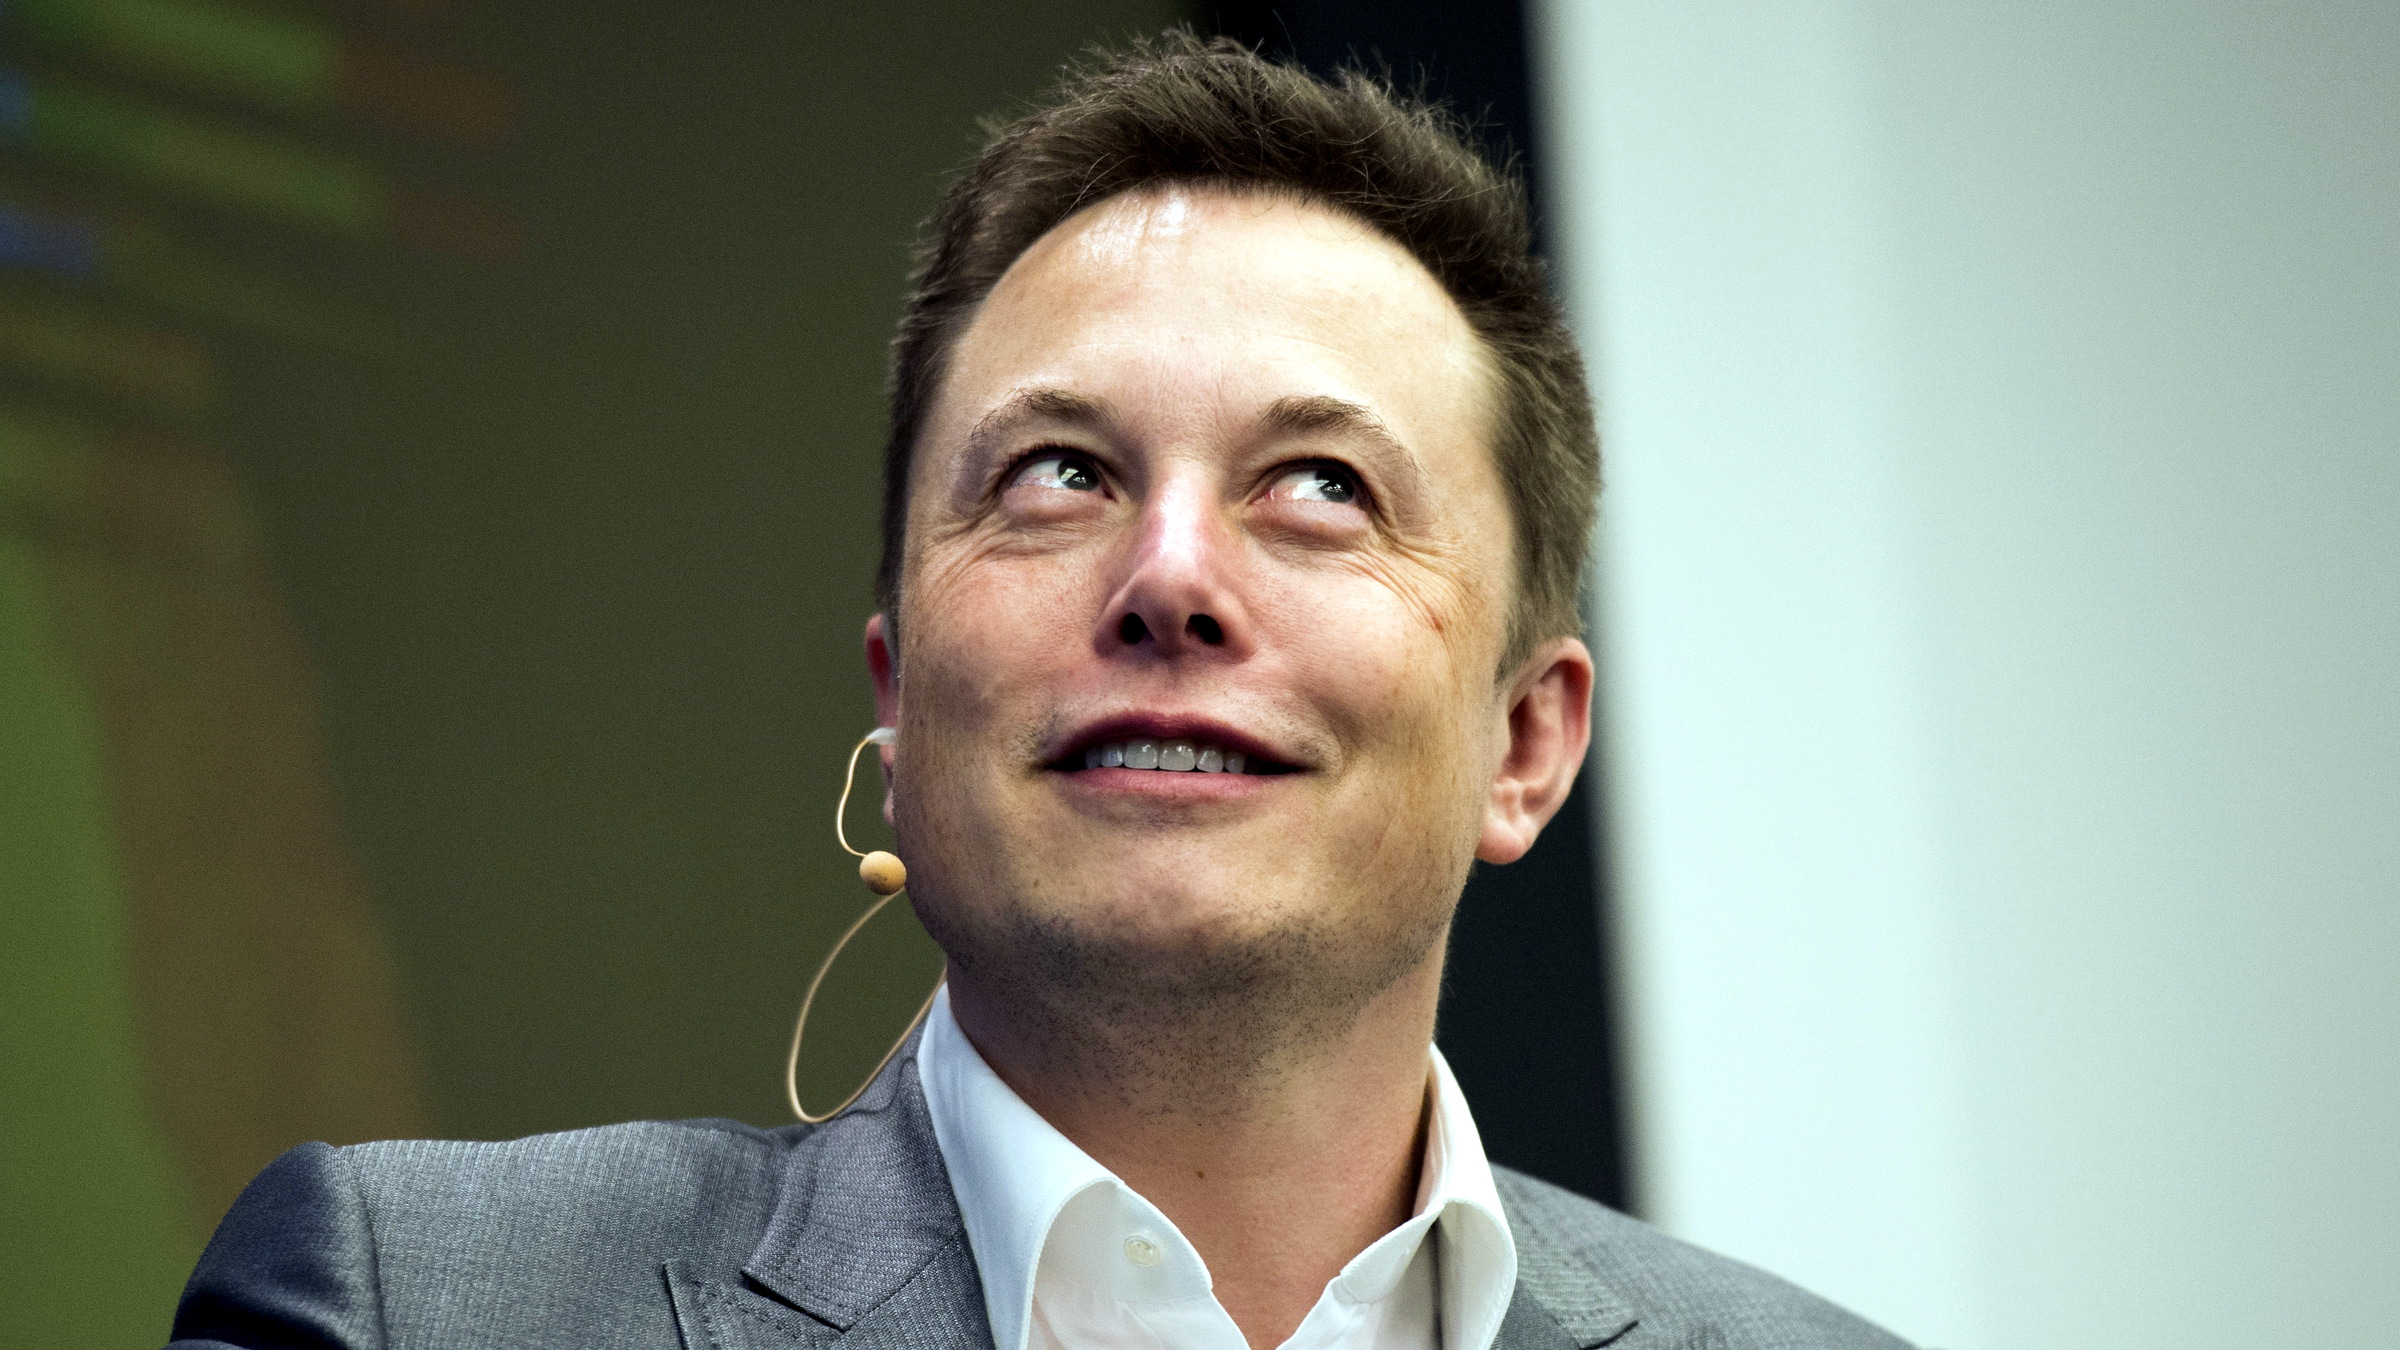 Elon Musk, Chairman of SolarCity and CEO of Tesla Motors, speaks at SolarCity's Inside Energy Summit in Manhattan, New York October 2, 2015. SolarCity on Friday said it had built a solar panel that is the most efficient in the industry at transforming sunlight into electricity.